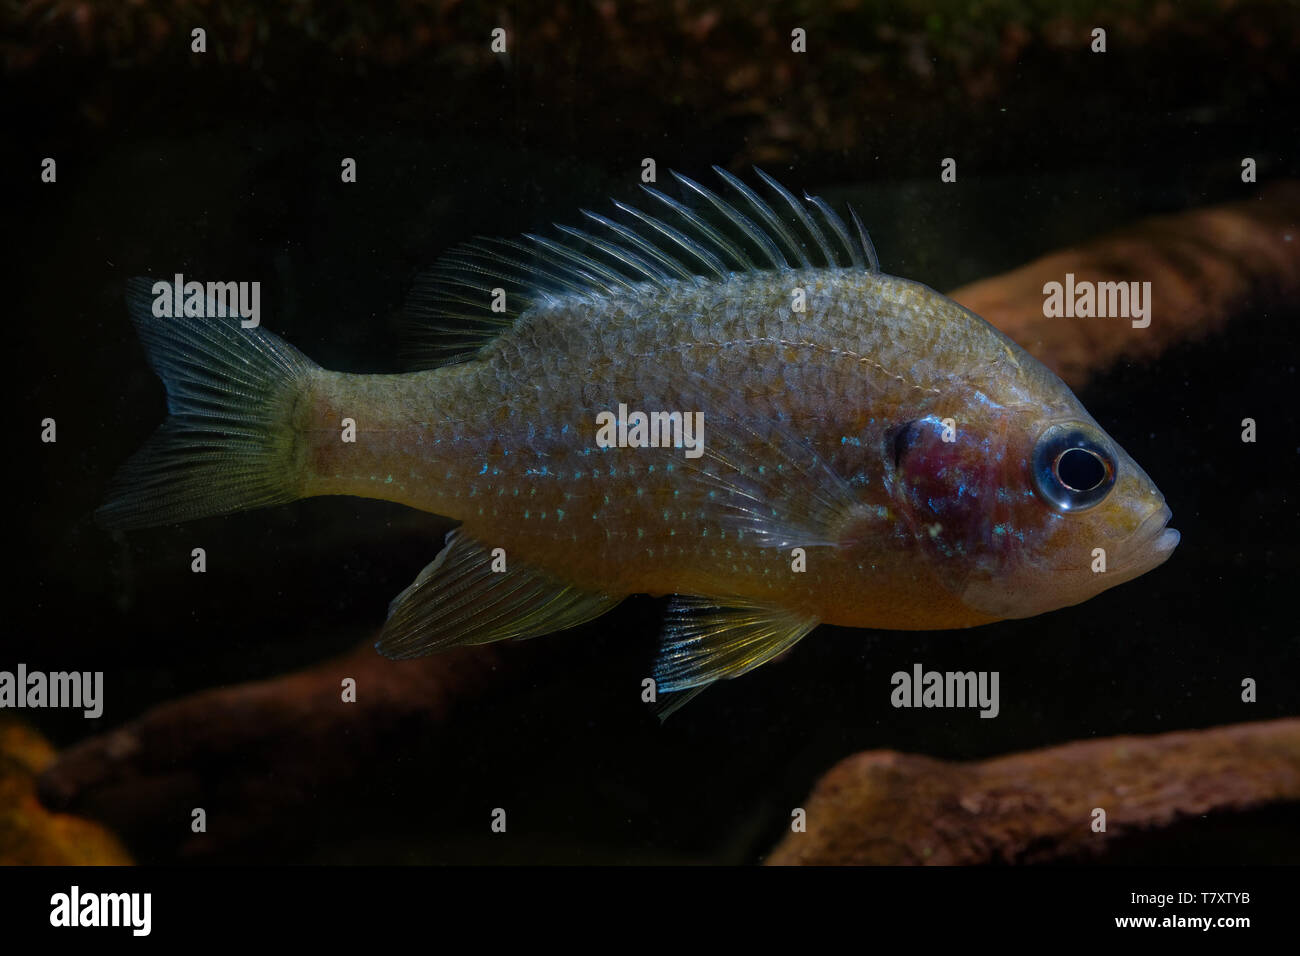 The pumpkinseed = Common Sunfish (Lepomis gibbosus) is a North American freshwater fish of the sunfish family (Centrarchidae). It is also referred to  Stock Photo